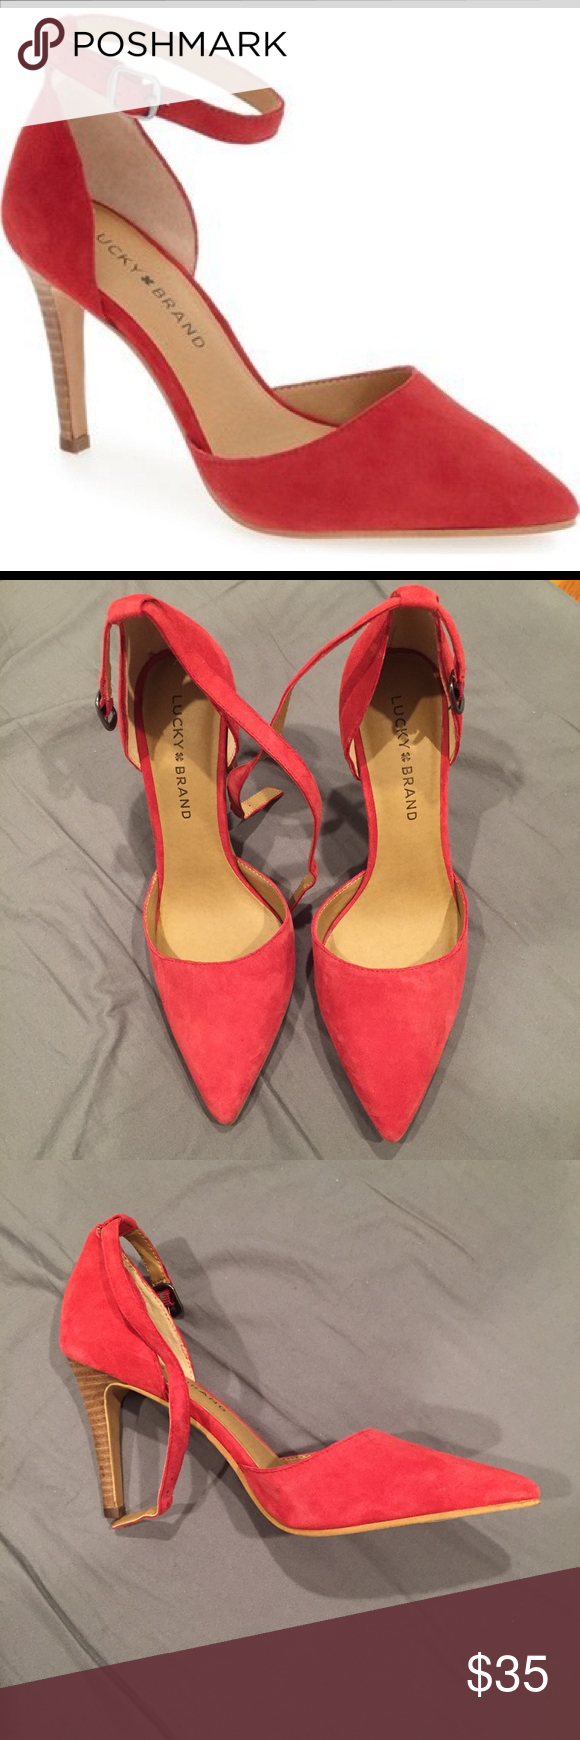 83266736740 Lucky Brand Suede Pumps